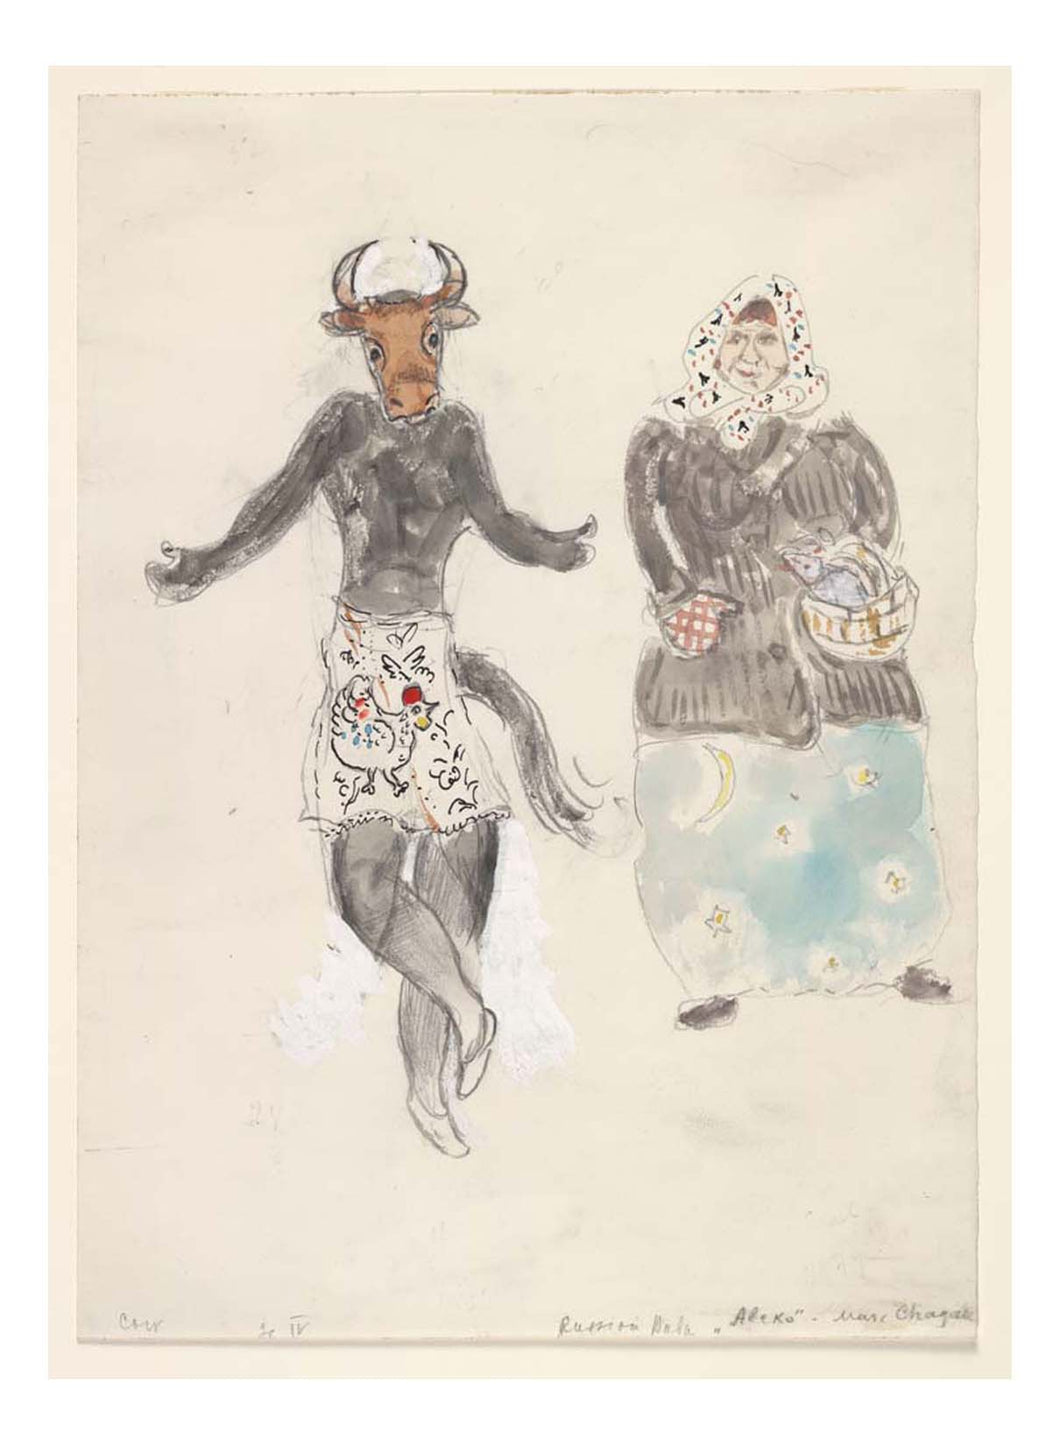 Marc Chagall - A Russian Baba and a Cow, costume design for Aleko, 16x12